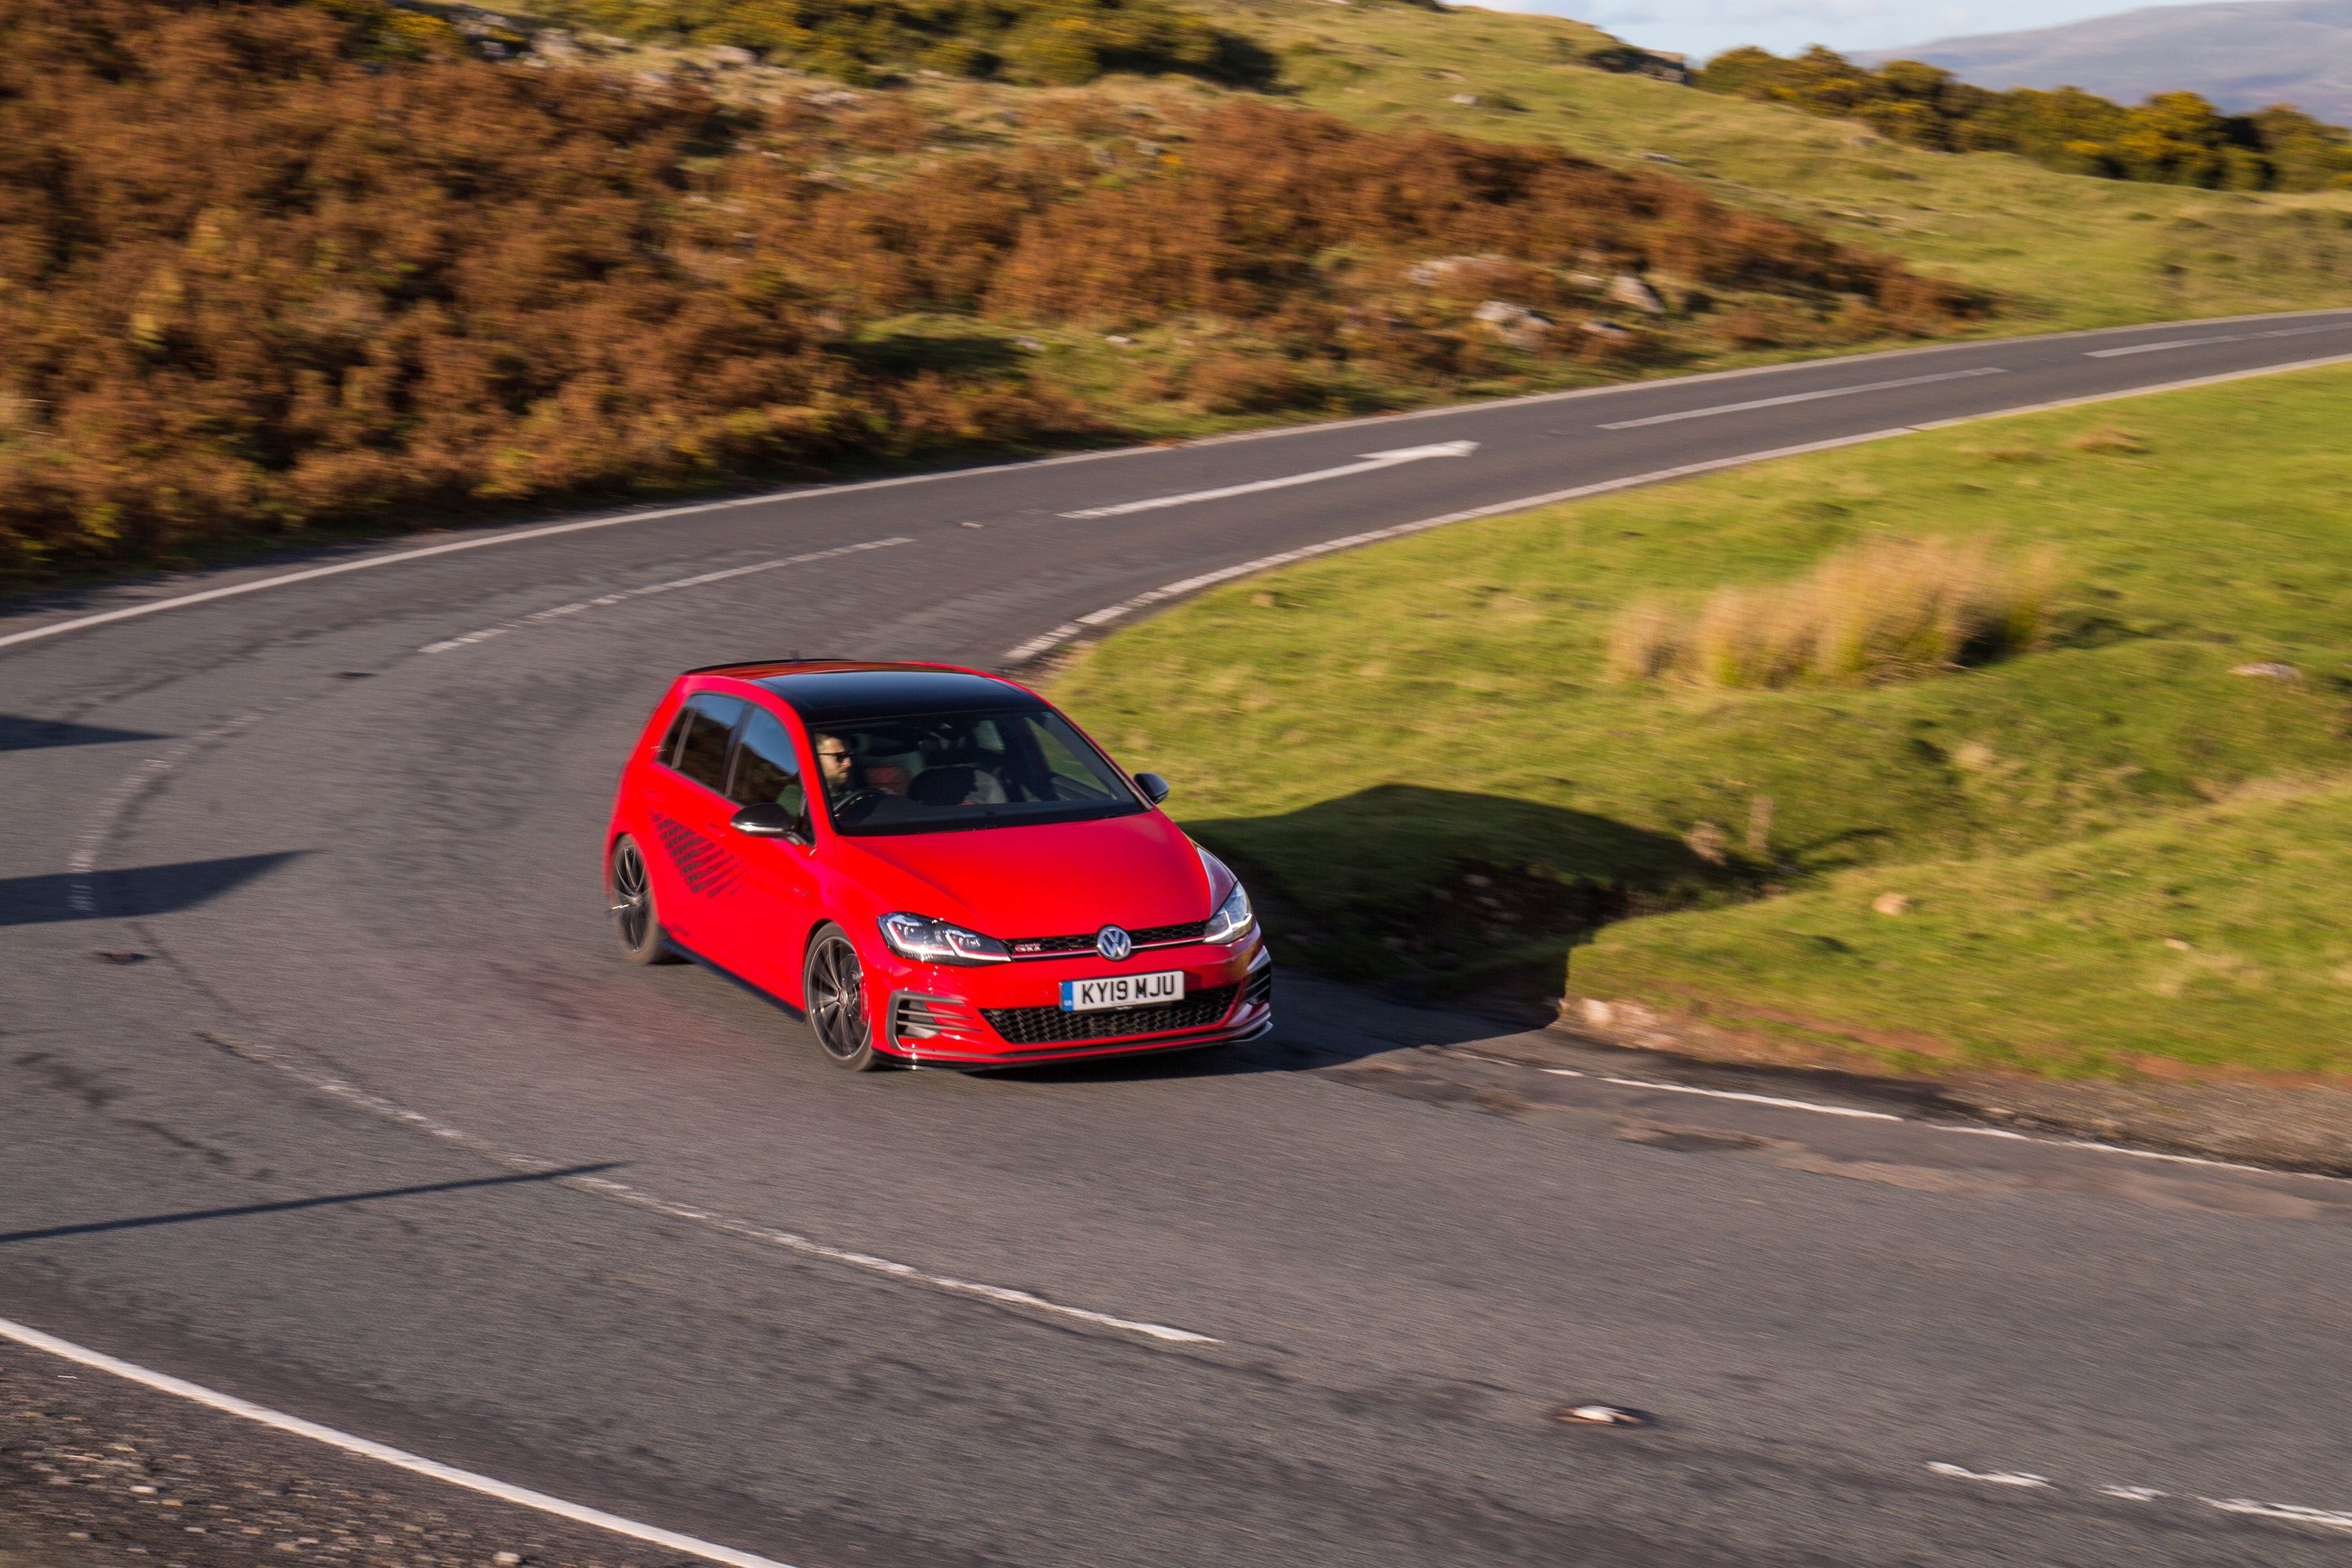 red golf driving on a windy road